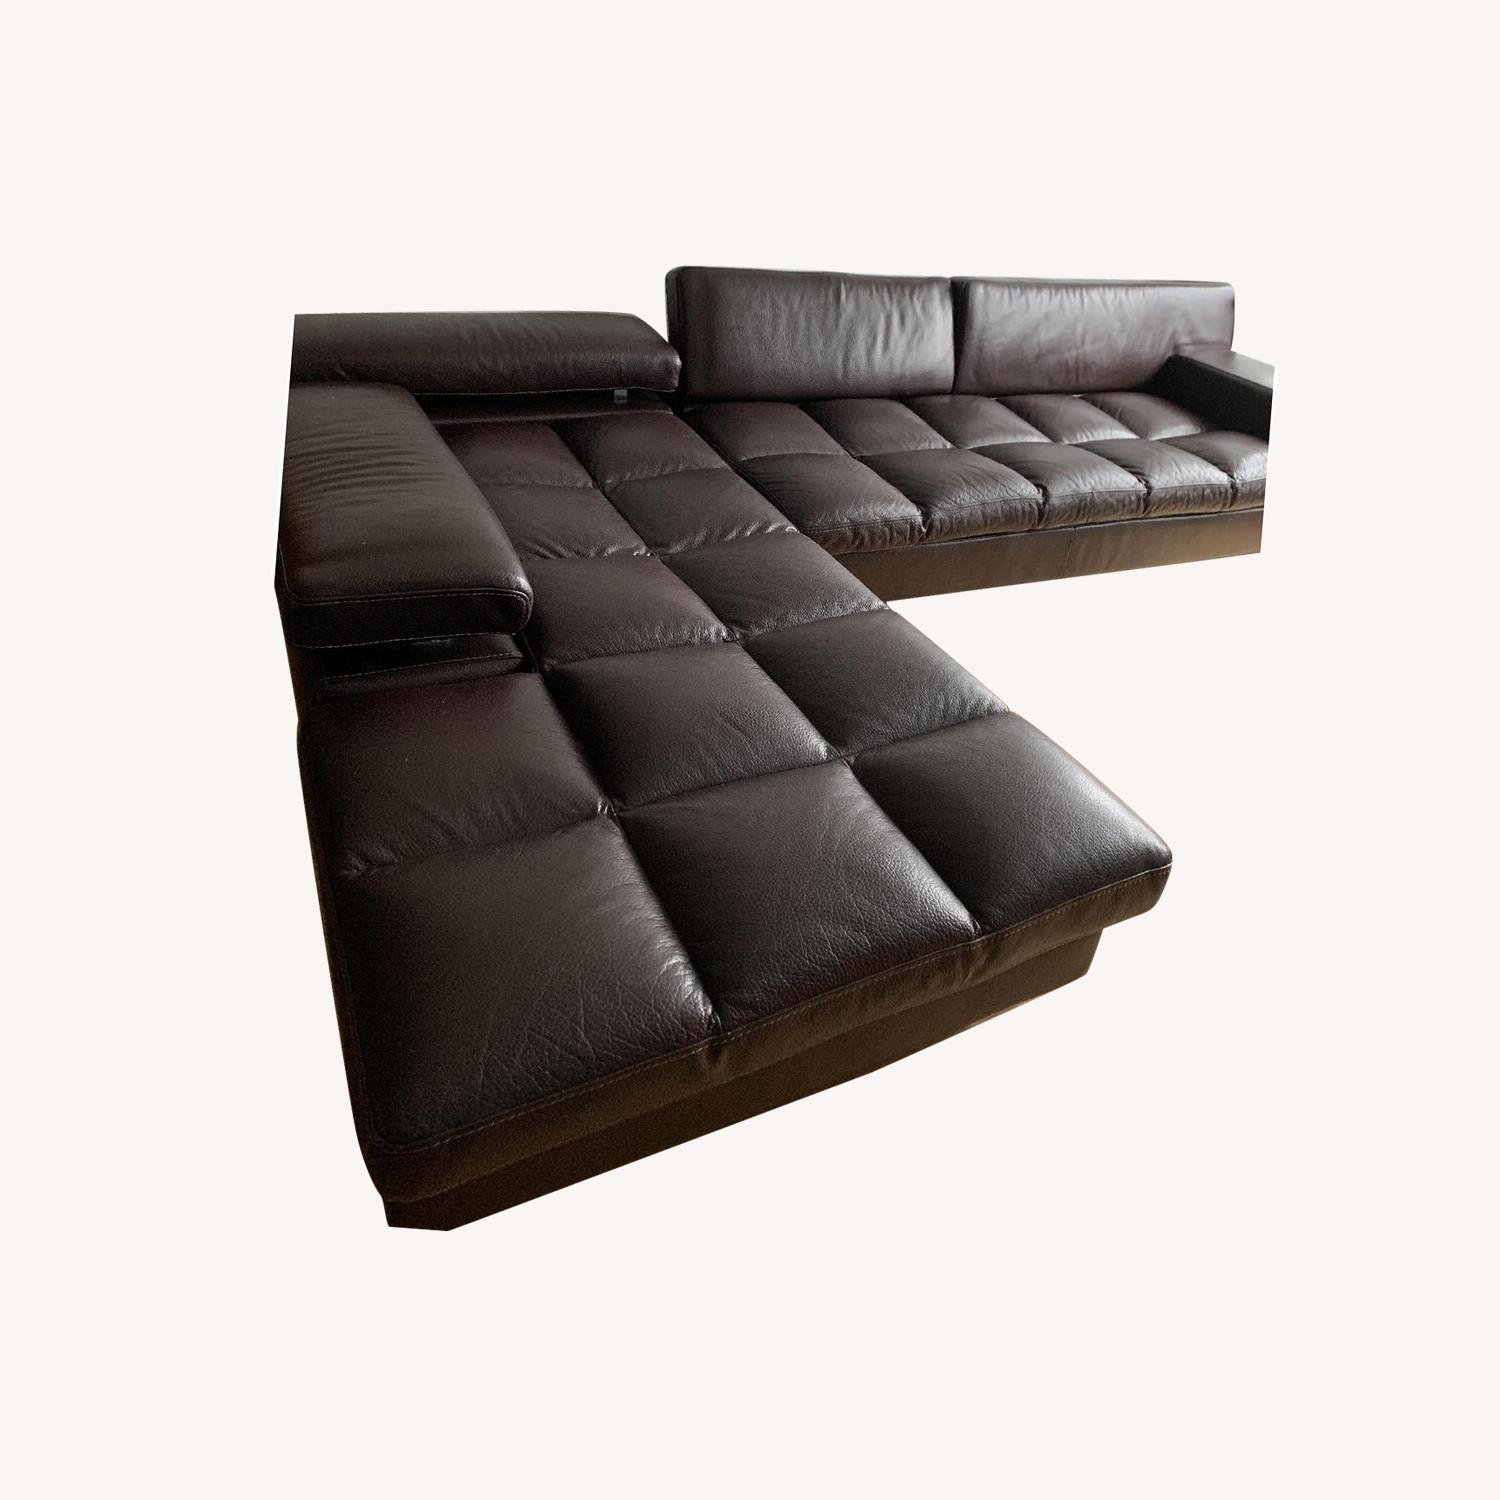 Roche Bobois Milano 2-Piece Sectional Sofa